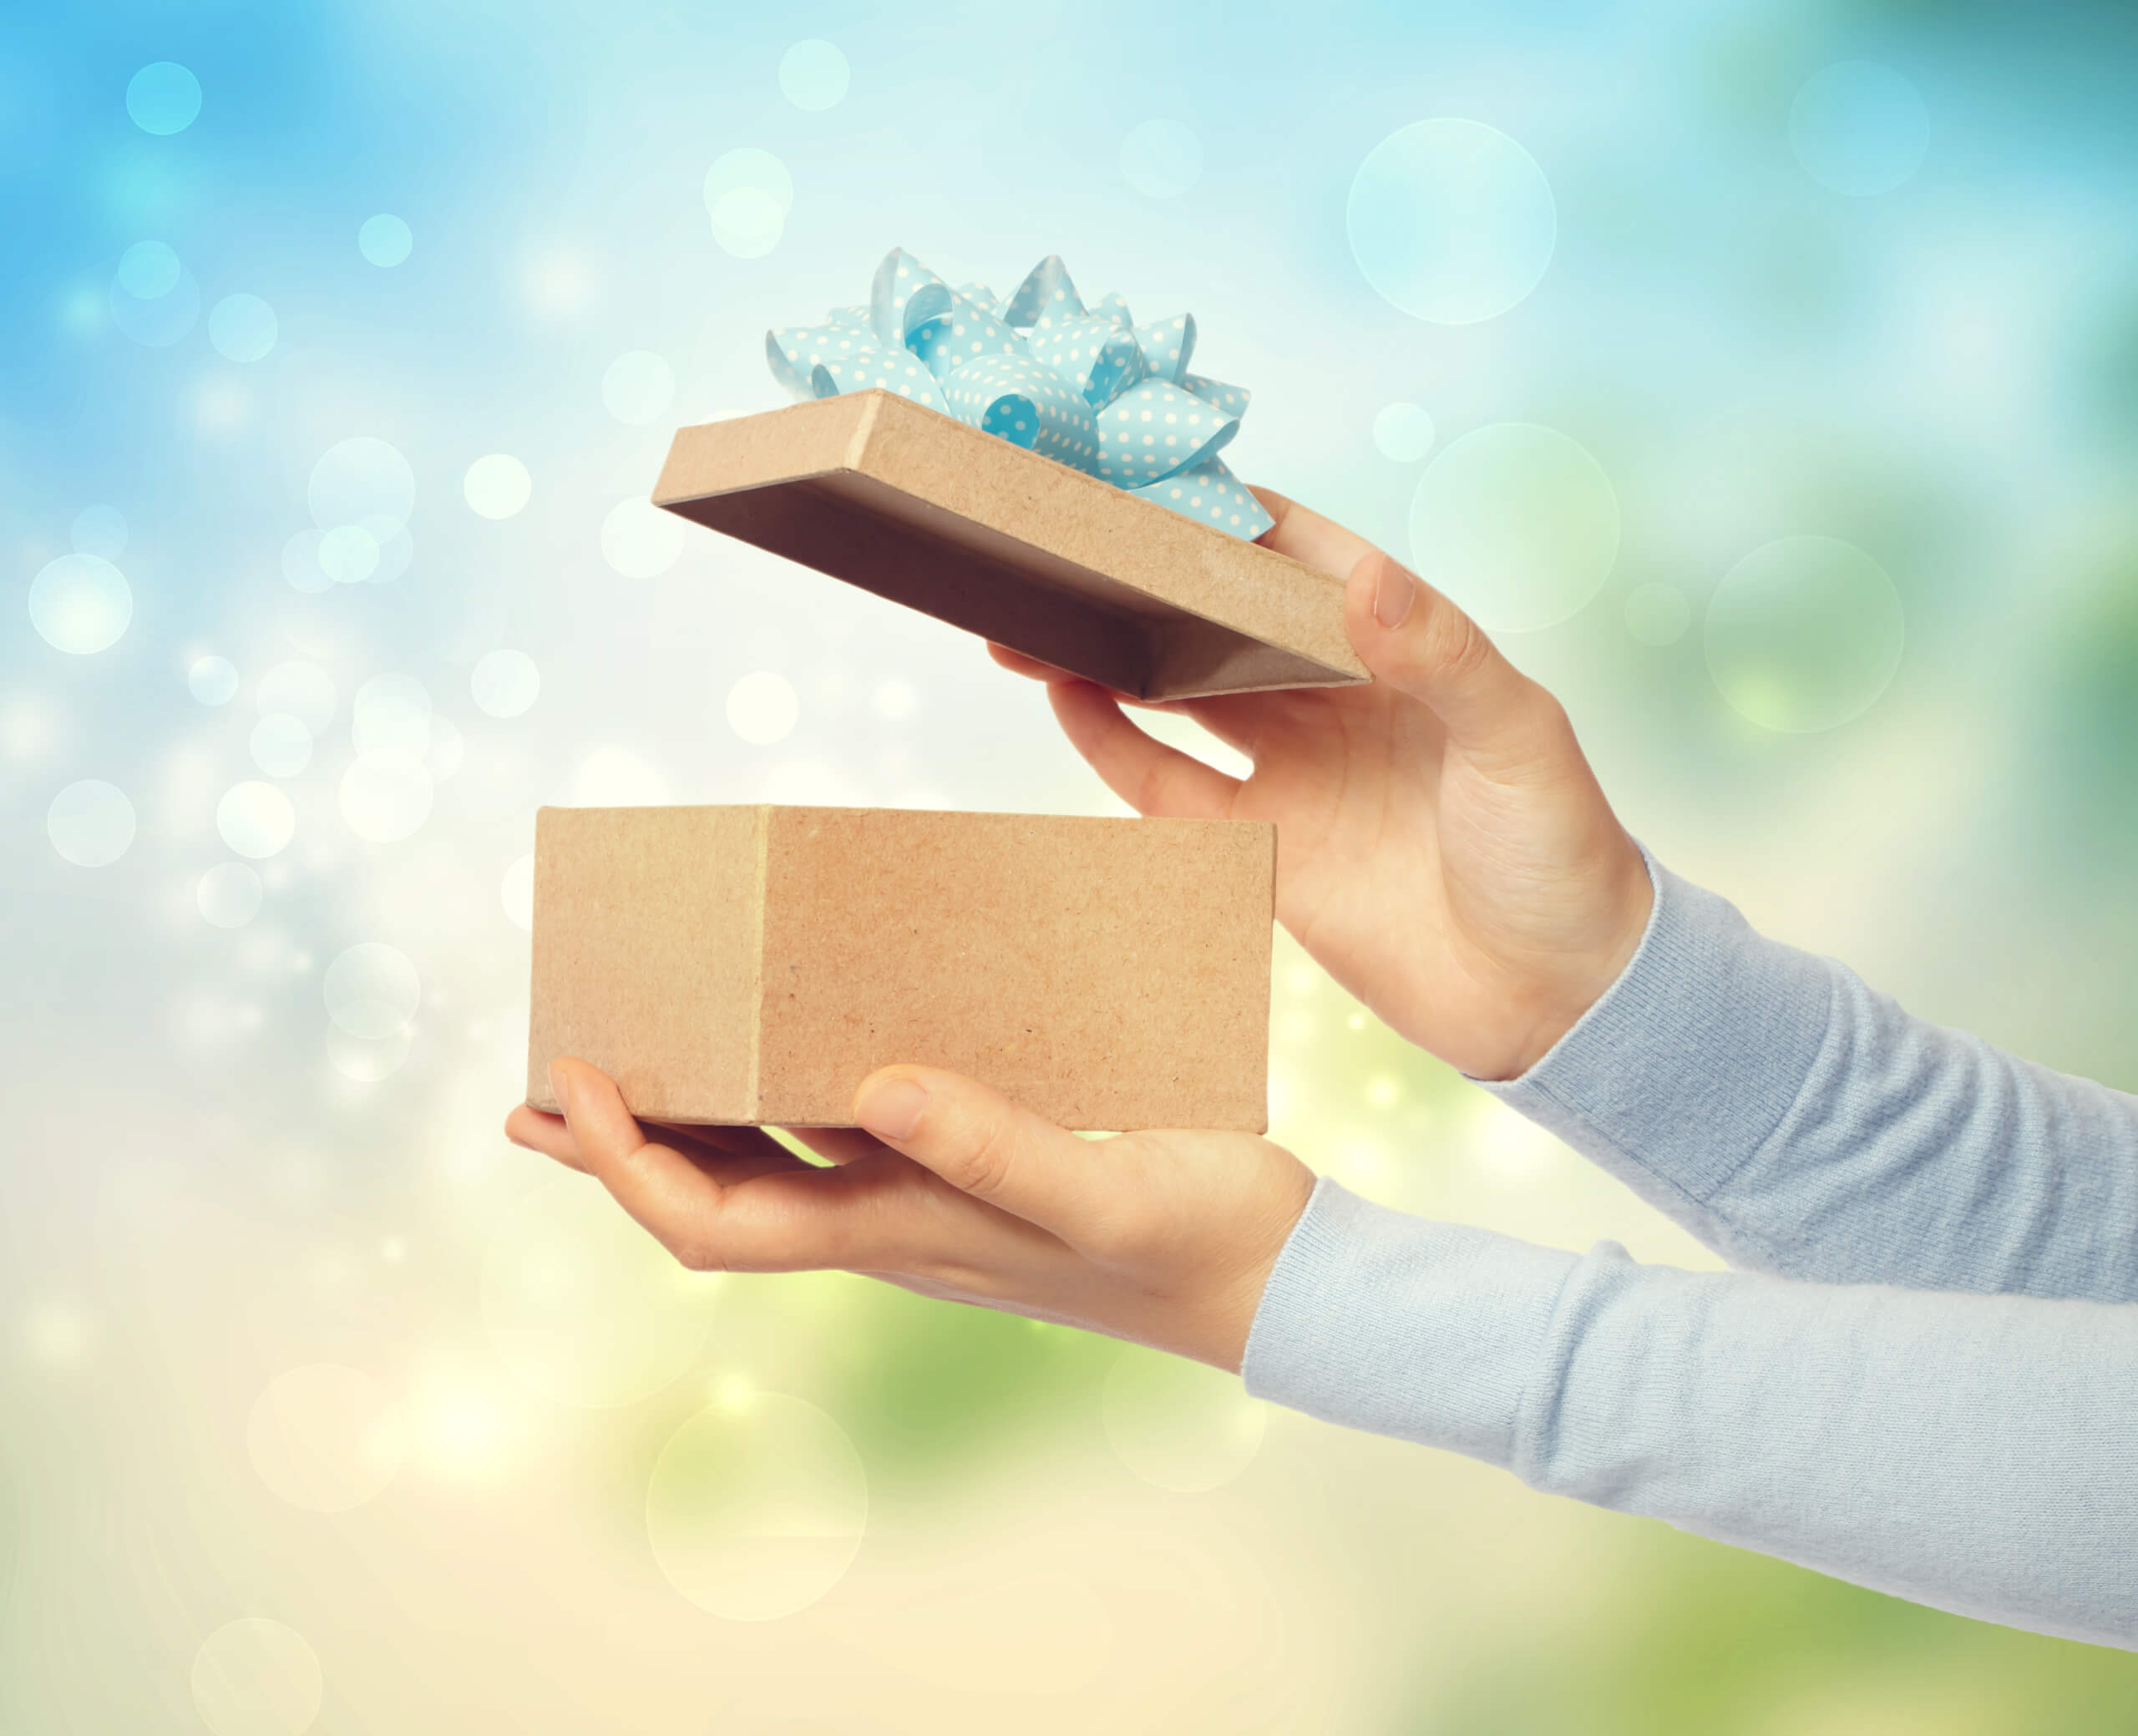 Gedanken Stopp graphicstock woman opening and presenting gift box on bright background SKqAtpyGOb